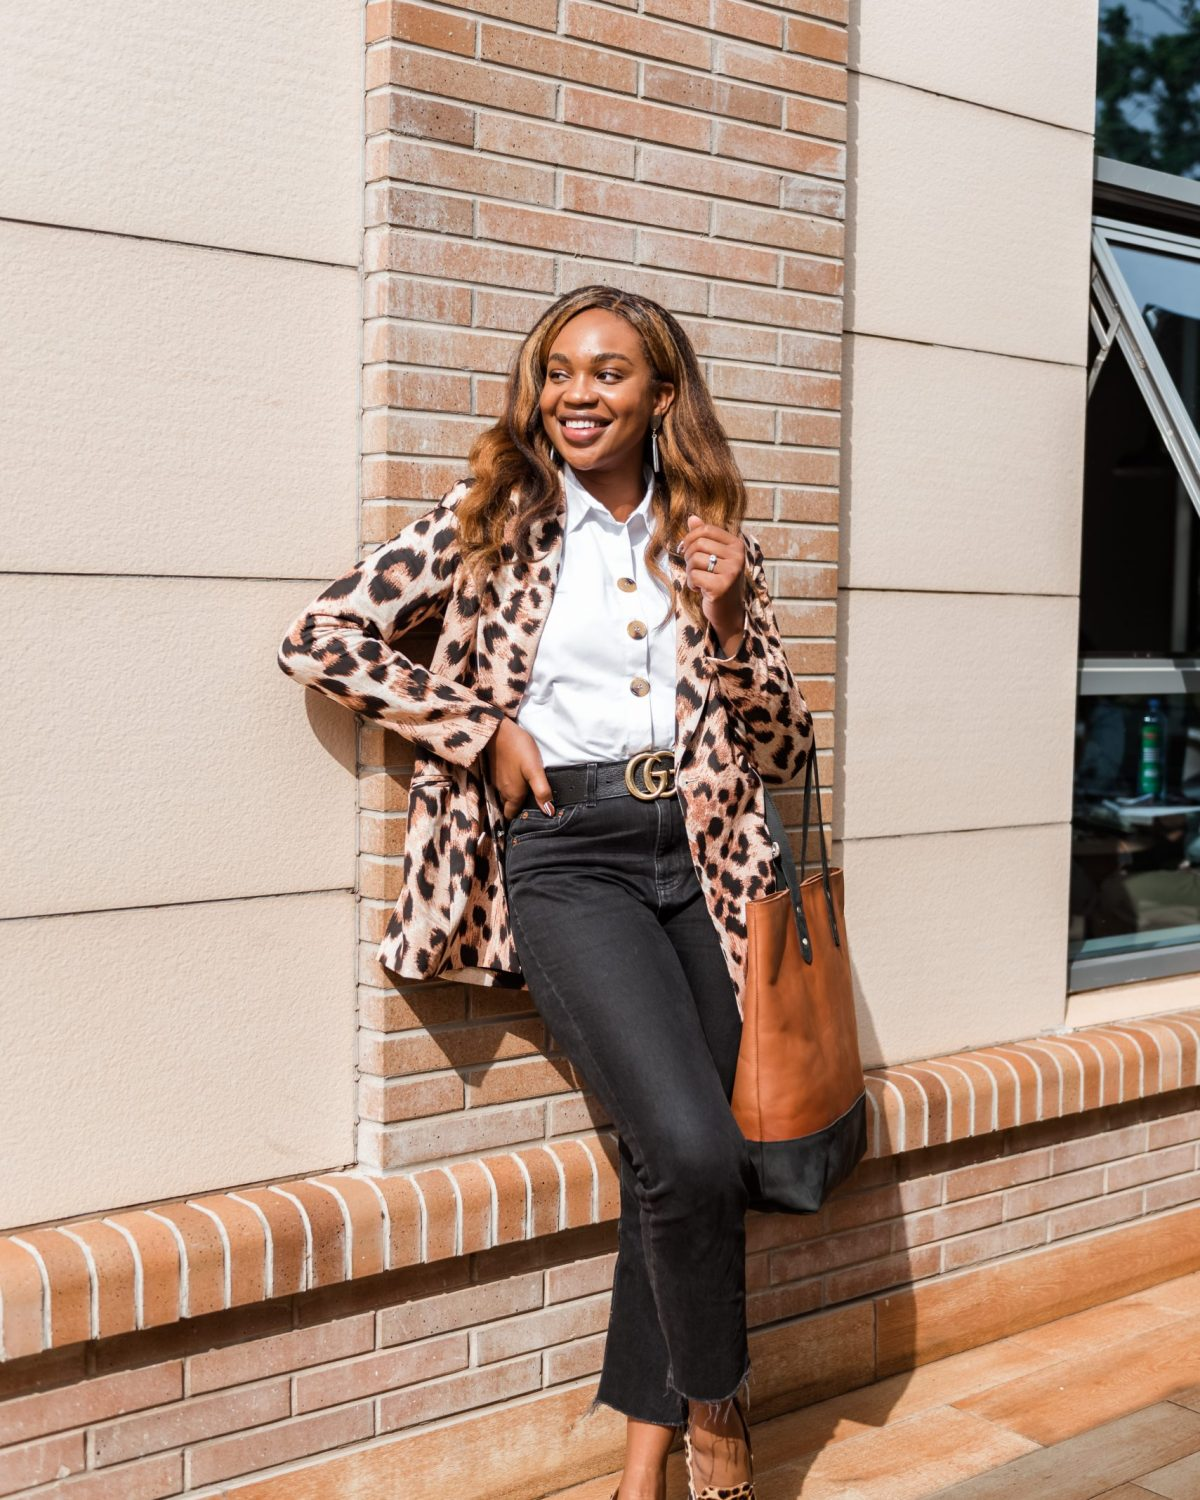 Full outfit shot of Ijeoma Kola posing outside with hand on hip wearing animal print blazer, white shirt, black pants and animal print shoes - How Black Owned Businesses Can Optimize Black History Month to Grow Business